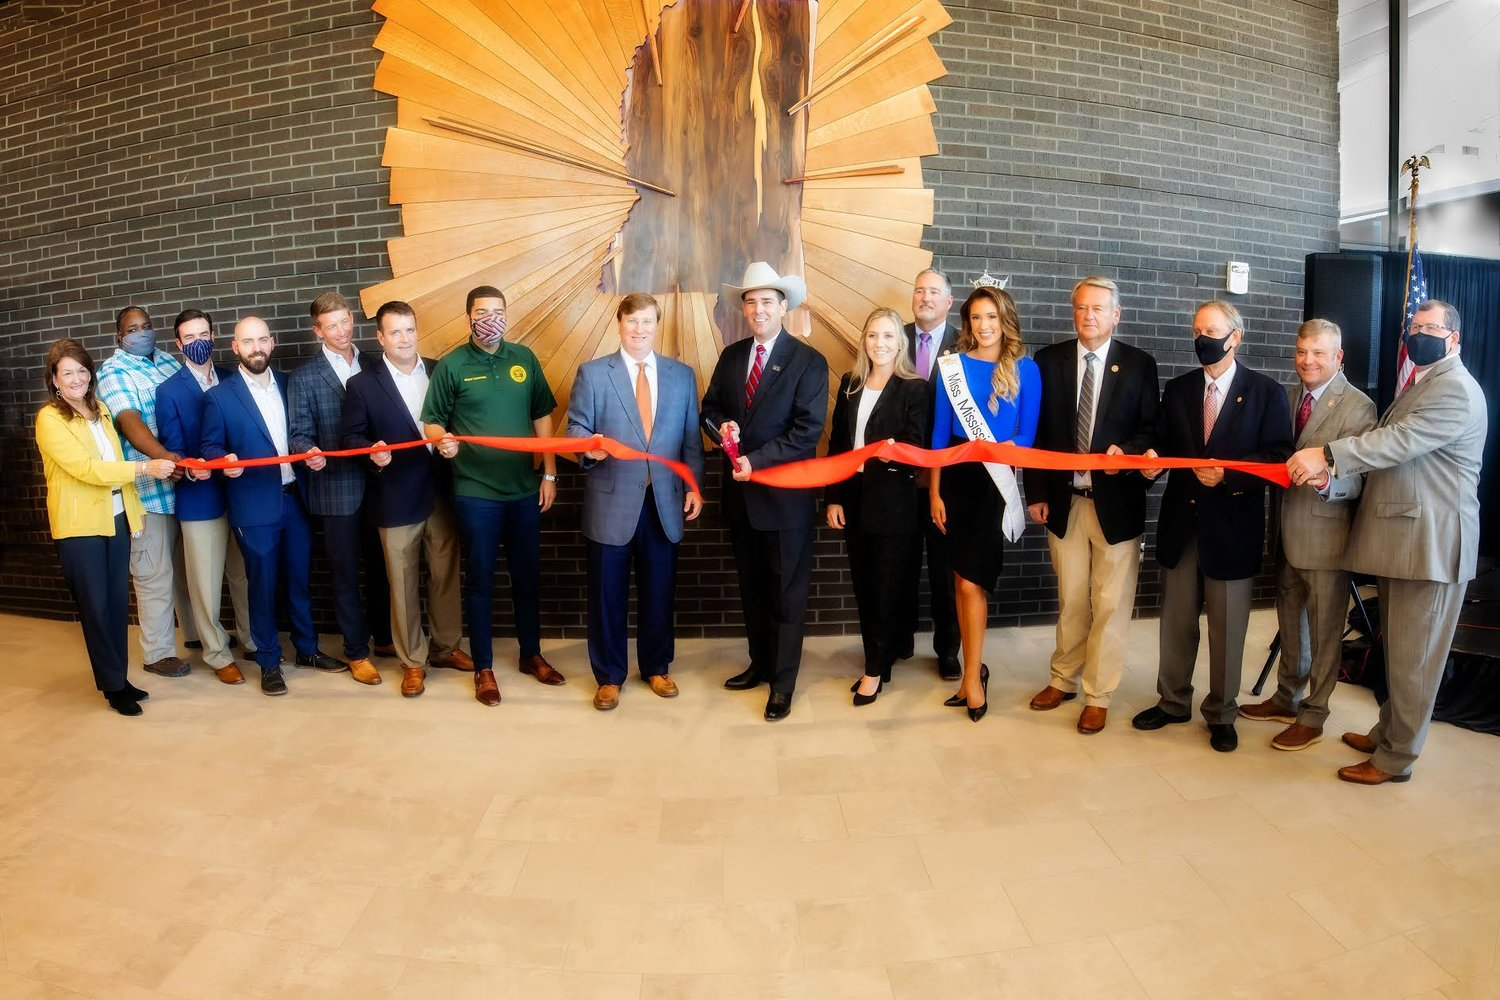 Commissioner Andy Gipson officially opens the new Mississippi Trade Mart on the State Fairgrounds with a building dedication and ceremonial ribbon cutting. Pictured left to right: Janet Trotter, Committee Assistant for the Senate Finance Committee; Mike Jenkins, Project Manager with Fountain Construction; Jack Allin, Principal Architect with Wier Boerner Allin Architecture; Sully Clemmer, Project Architect with Wier Boerner Allin Architecture; Jamie Wier, Principal Architect with Wier Boerner Allin Architecture; Michael Boerner, Principal Architect with Wier Boerner Allin Architecture; Jackson Mayor Chokwe Antar Lumumba; Mississippi Governor Tate Reeves; Commissioner Andy Gipson; Anna-Michael Smith; Vince Mangold, Mississippi House of Representatives Agriculture Committee Vice-Chairman; Miss Mississippi Mary Margaret Hyer; Bill Pigott, Mississippi House of Representatives Agriculture Chairman; Mike Chaney, Mississippi Commissioner of Insurance; Mississippi Representative Bubba Carpenter; and Dane Maxwell, Mississippi Public Service Commissioner.